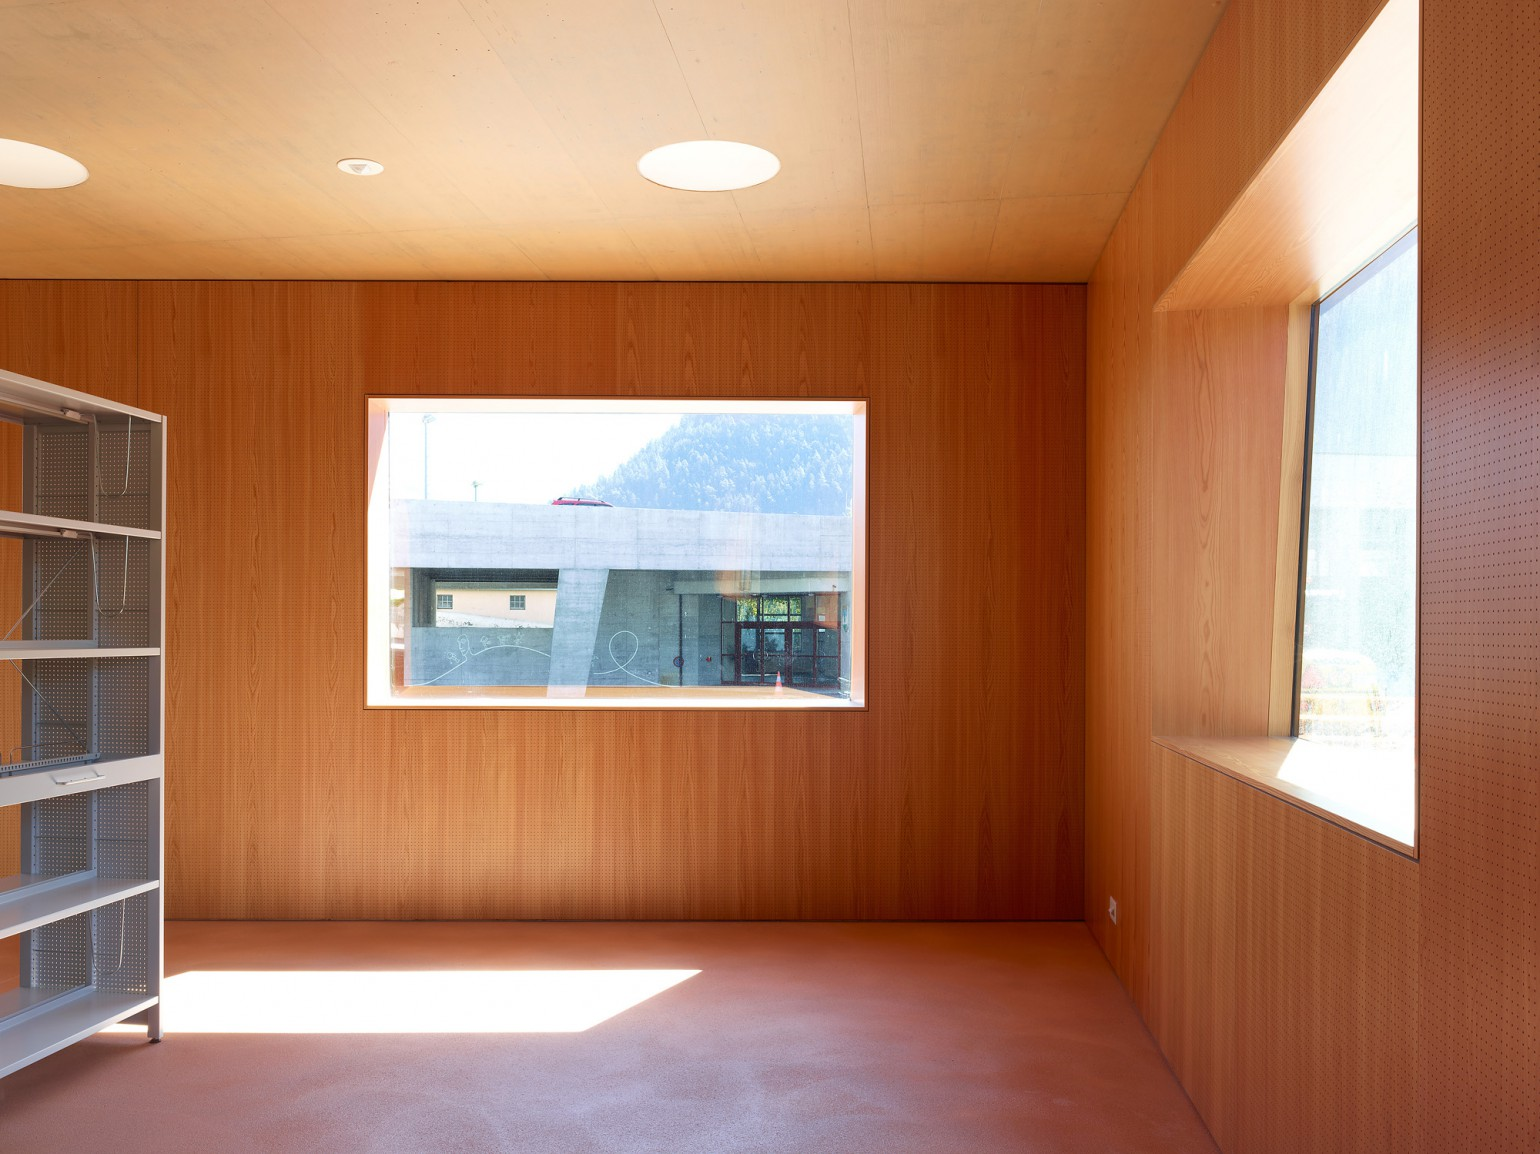 ecole_primaire_volleges_meyer_architecture_sion_07